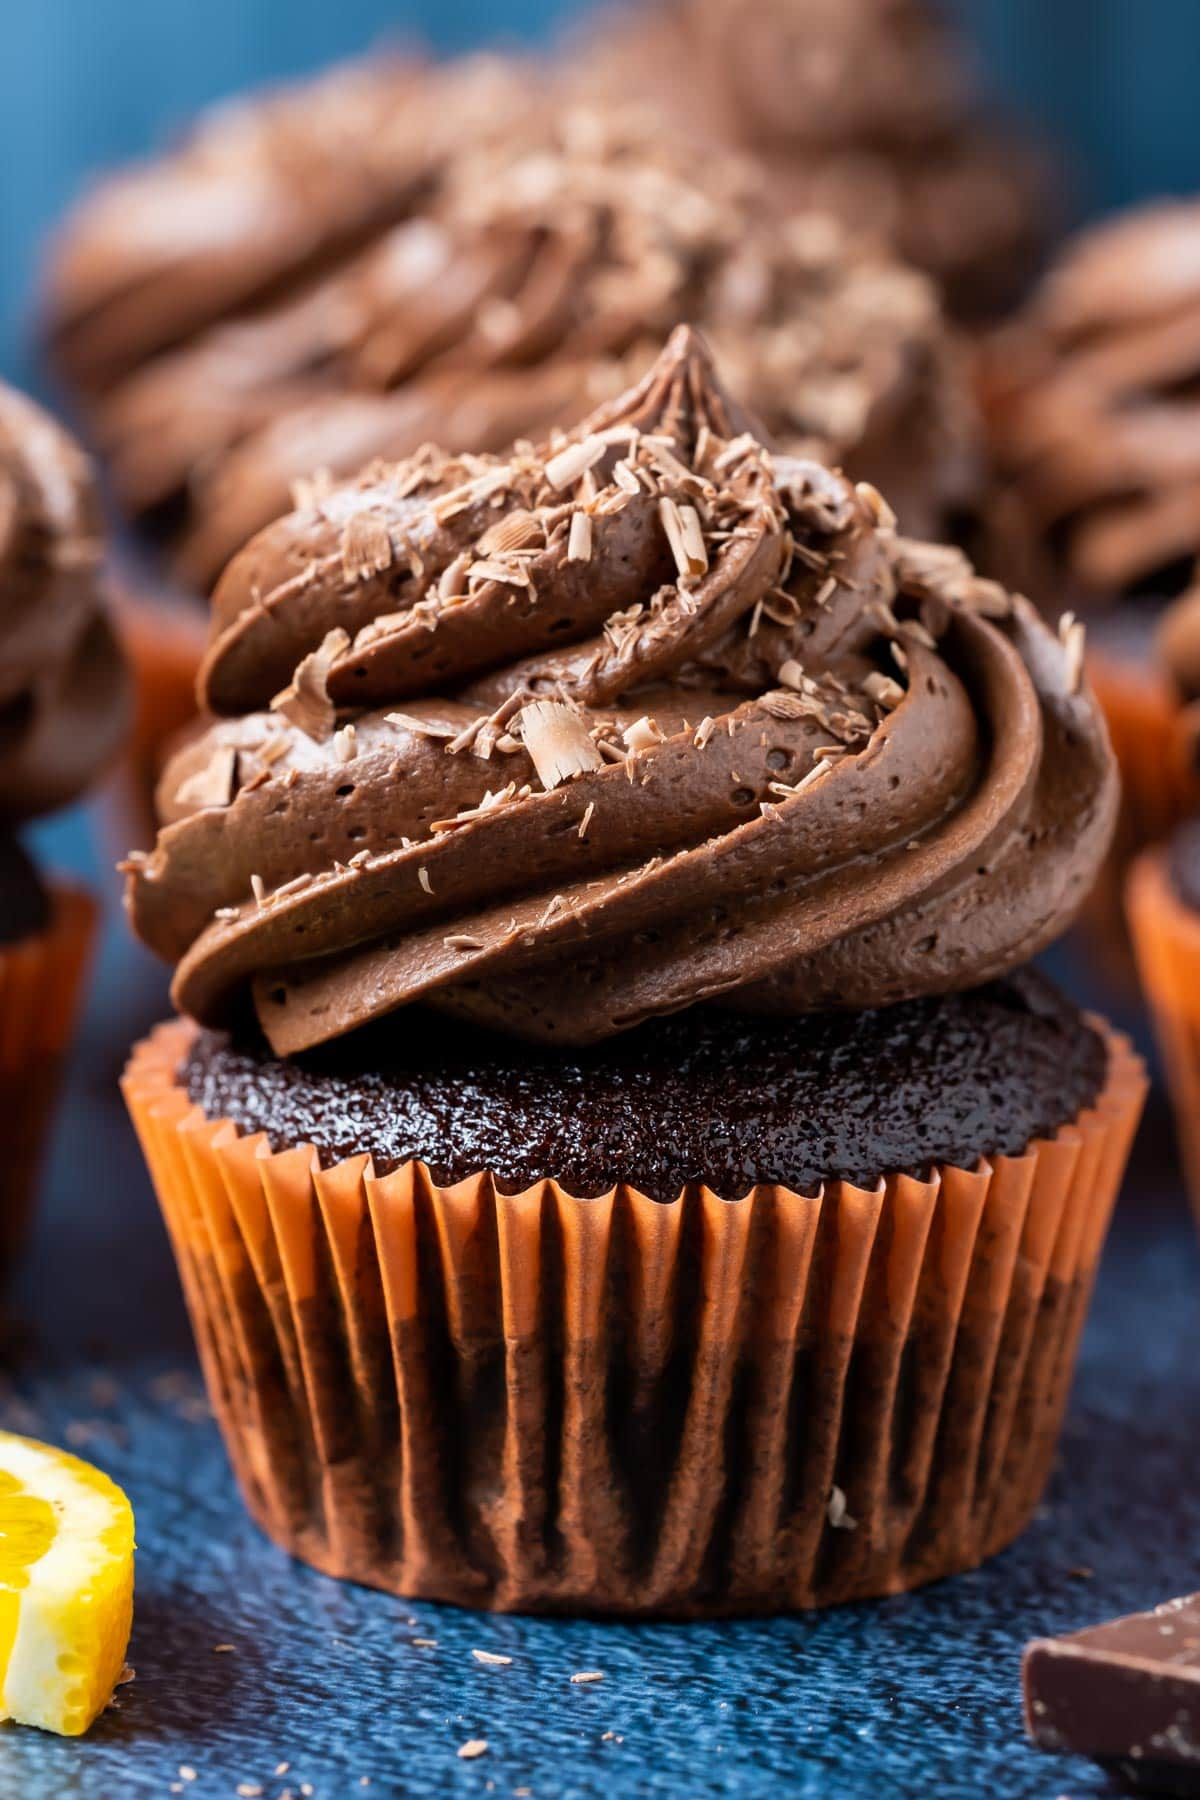 Chocolate orange cupcakes topped with frosting and chocolate shavings.